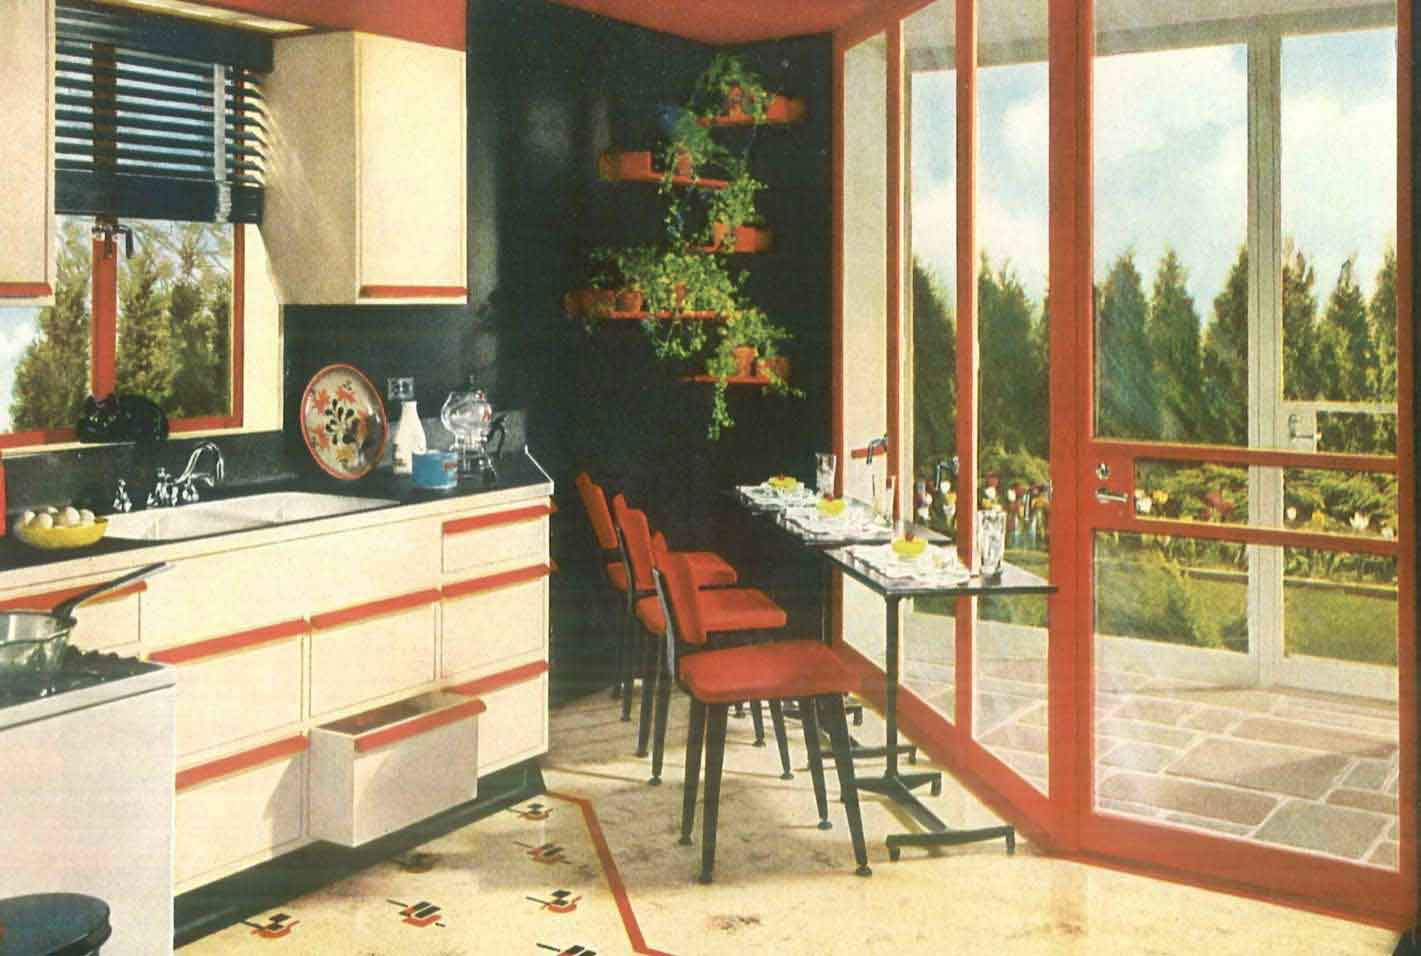 Home decorating 1940's style 2